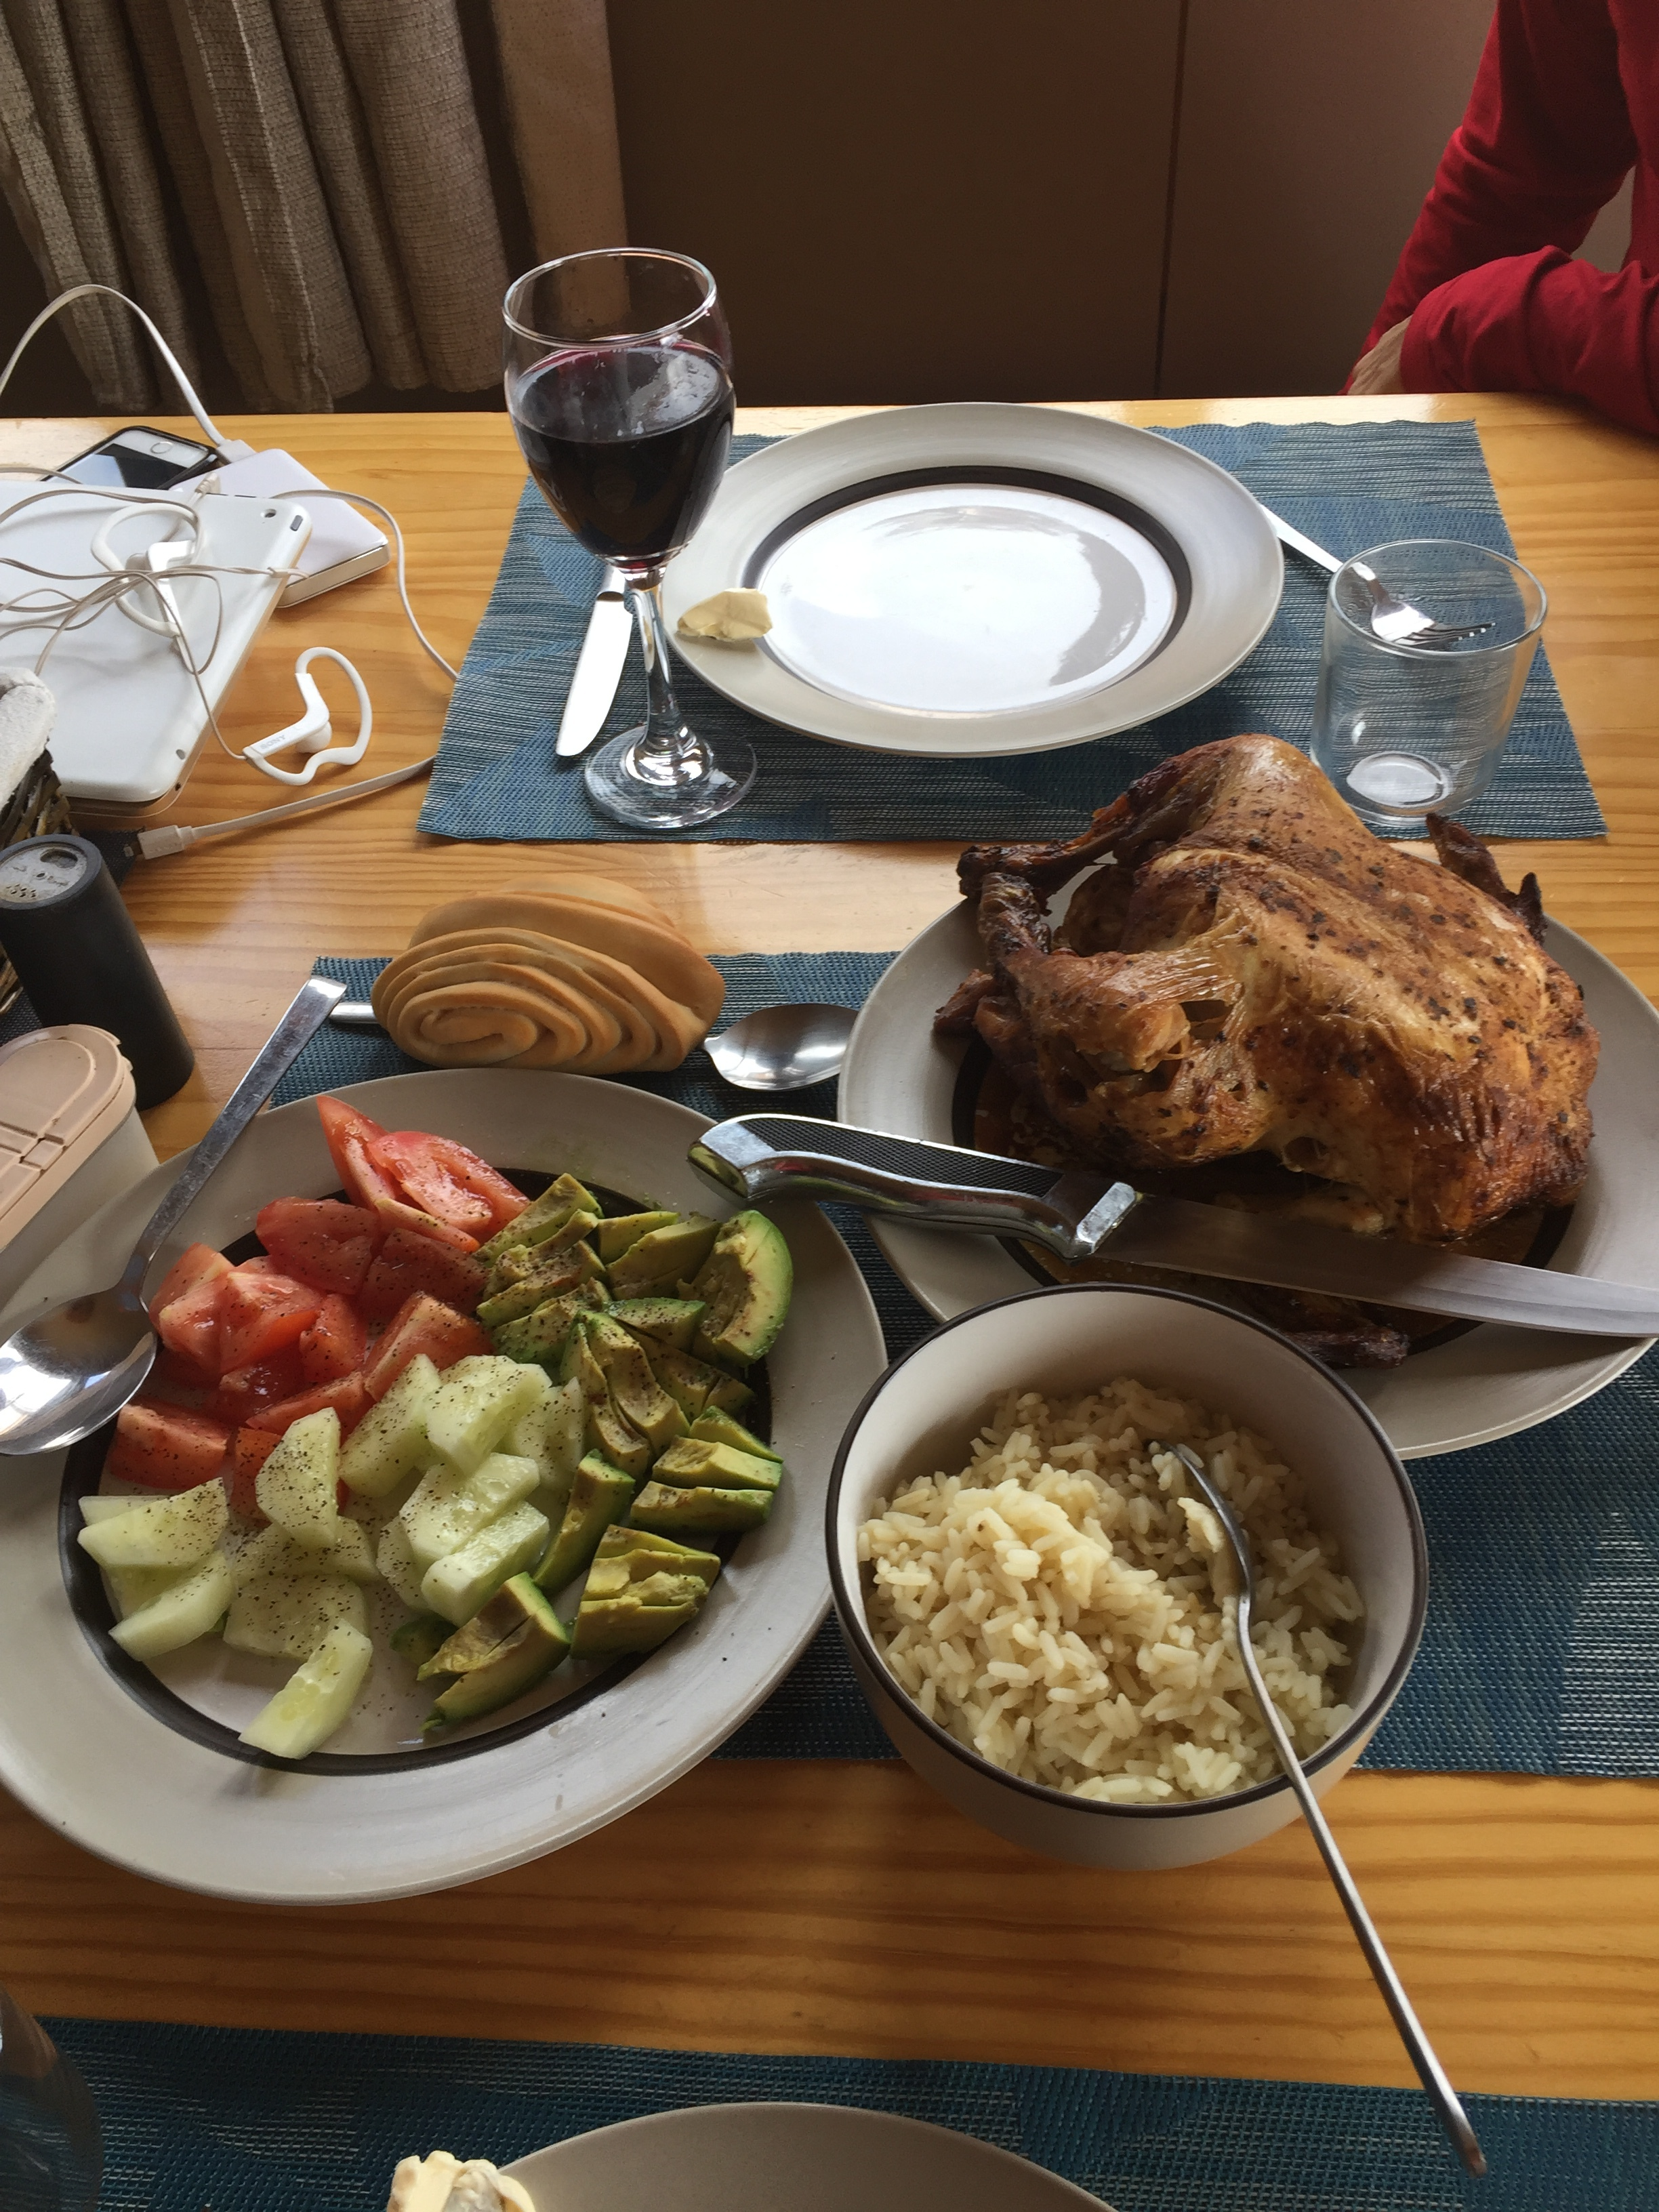 Our Patagonia thanksgiving